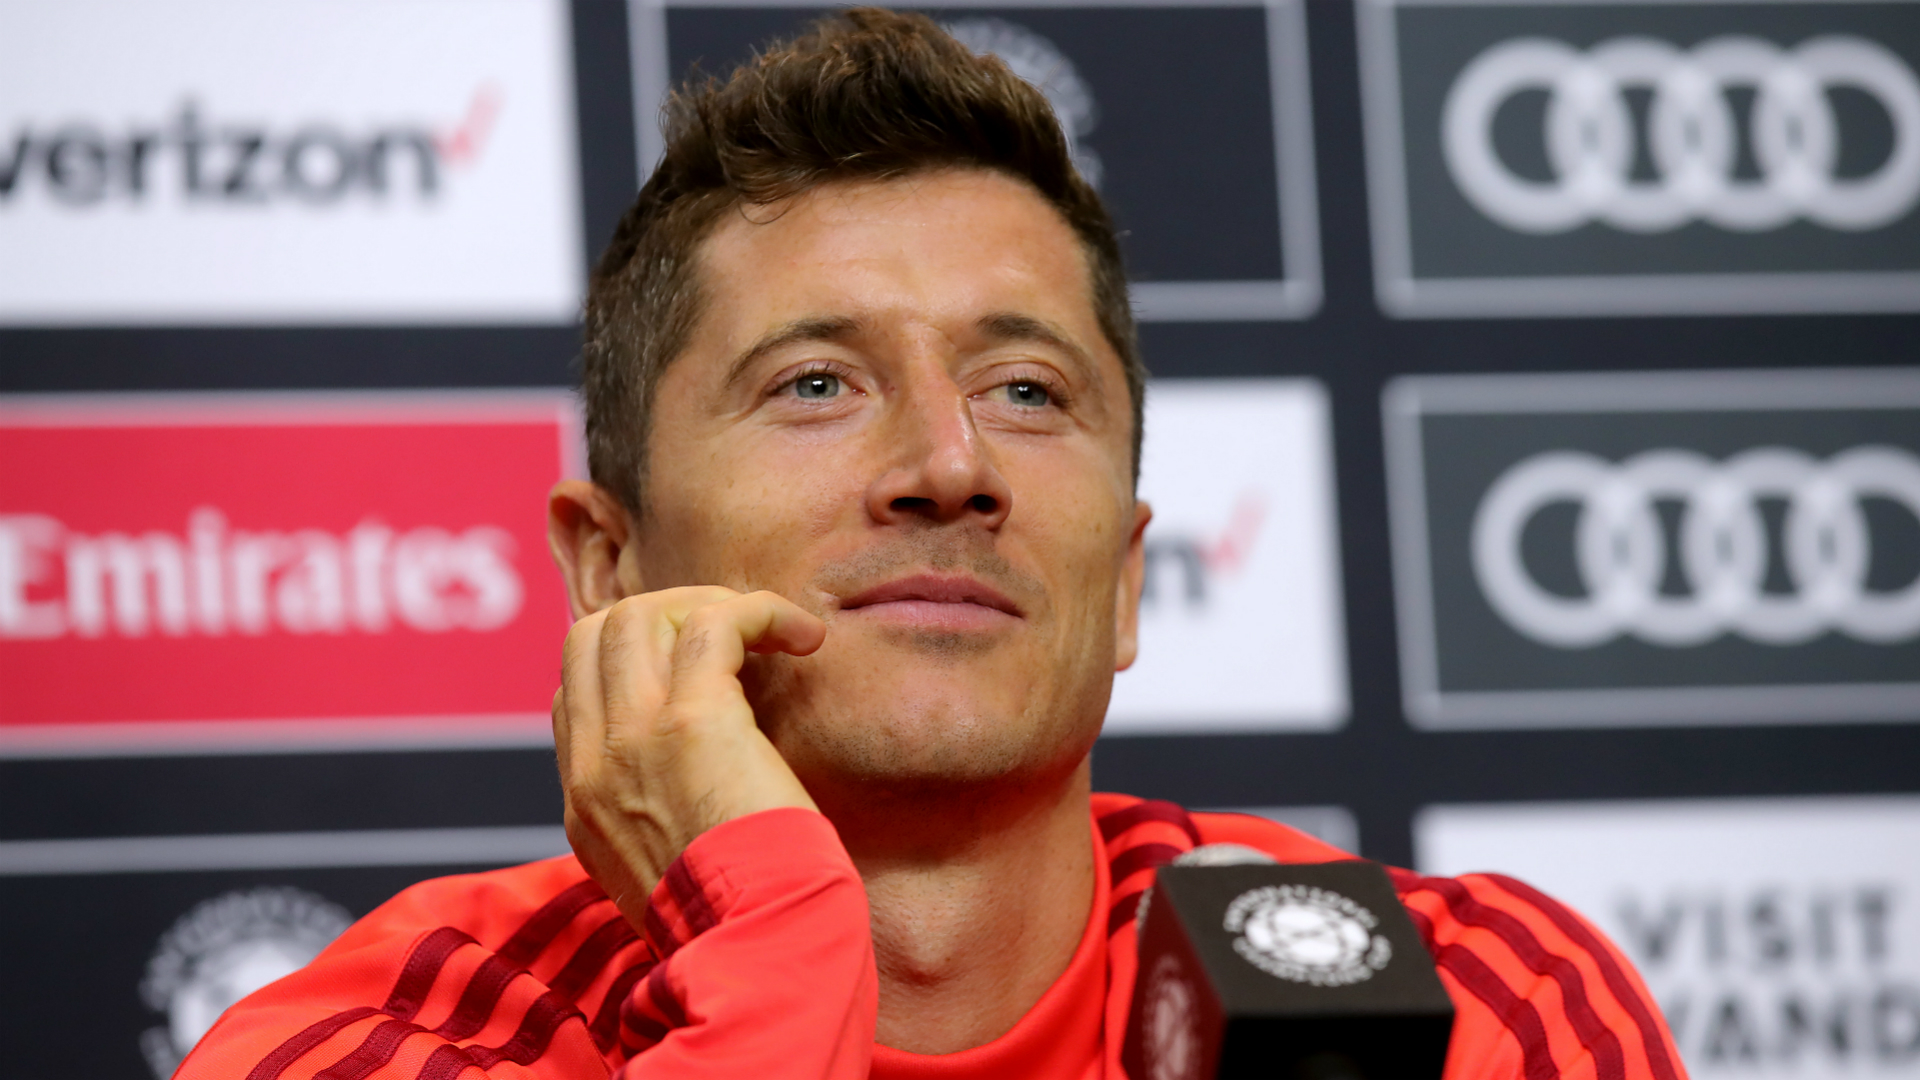 Lewandowski is now a leader at Bayern - Kovac